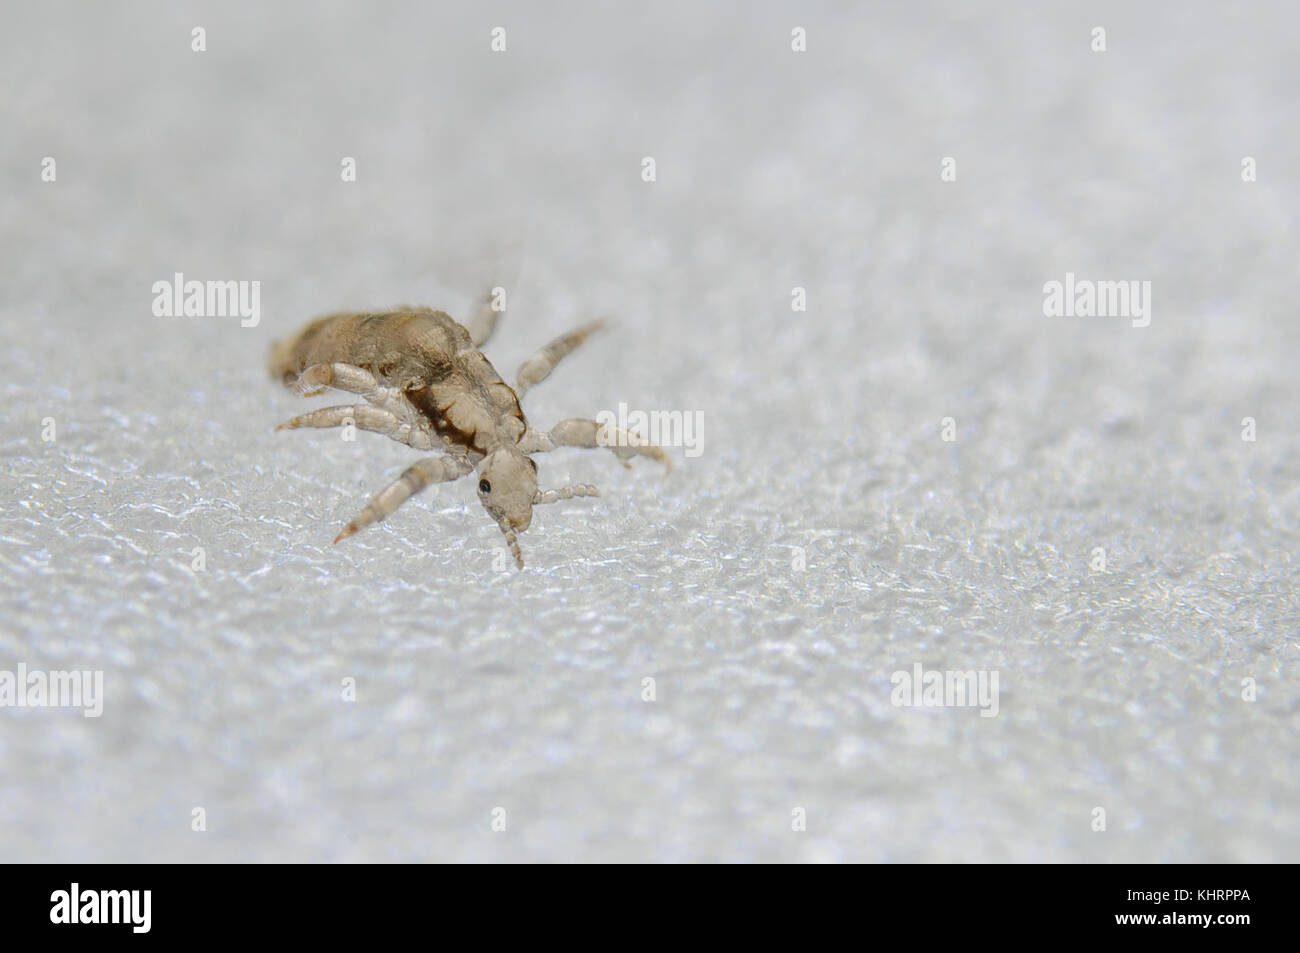 Head louse. Ectoparasite sucking human blood. Head lice. - Stock Image